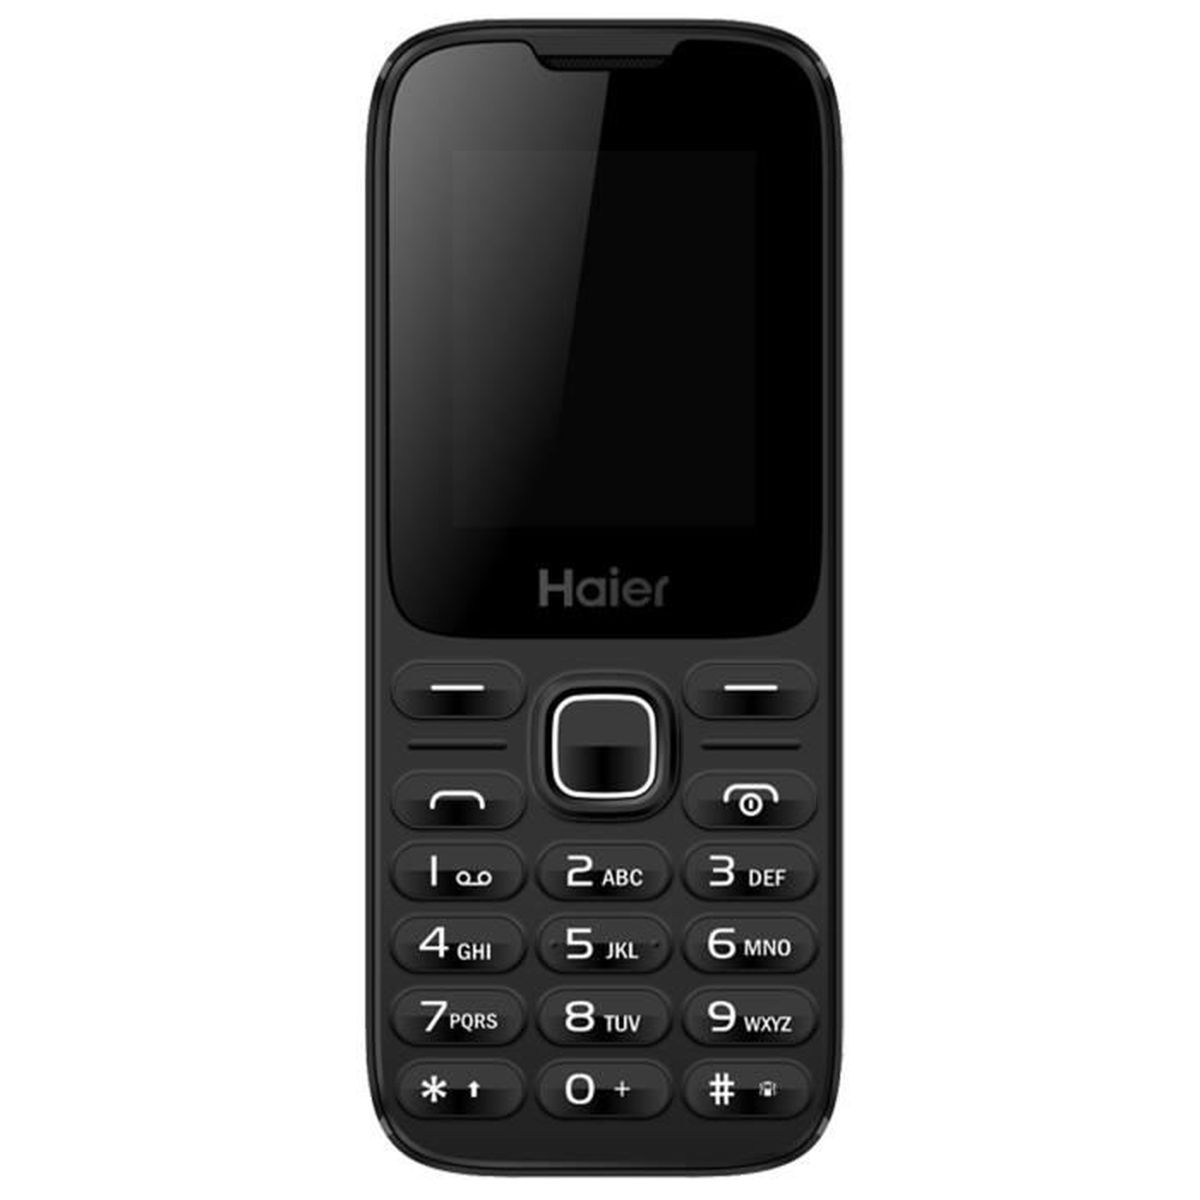 haier m220 feature phone cran noir achat t l phone portable pas cher avis et meilleur. Black Bedroom Furniture Sets. Home Design Ideas